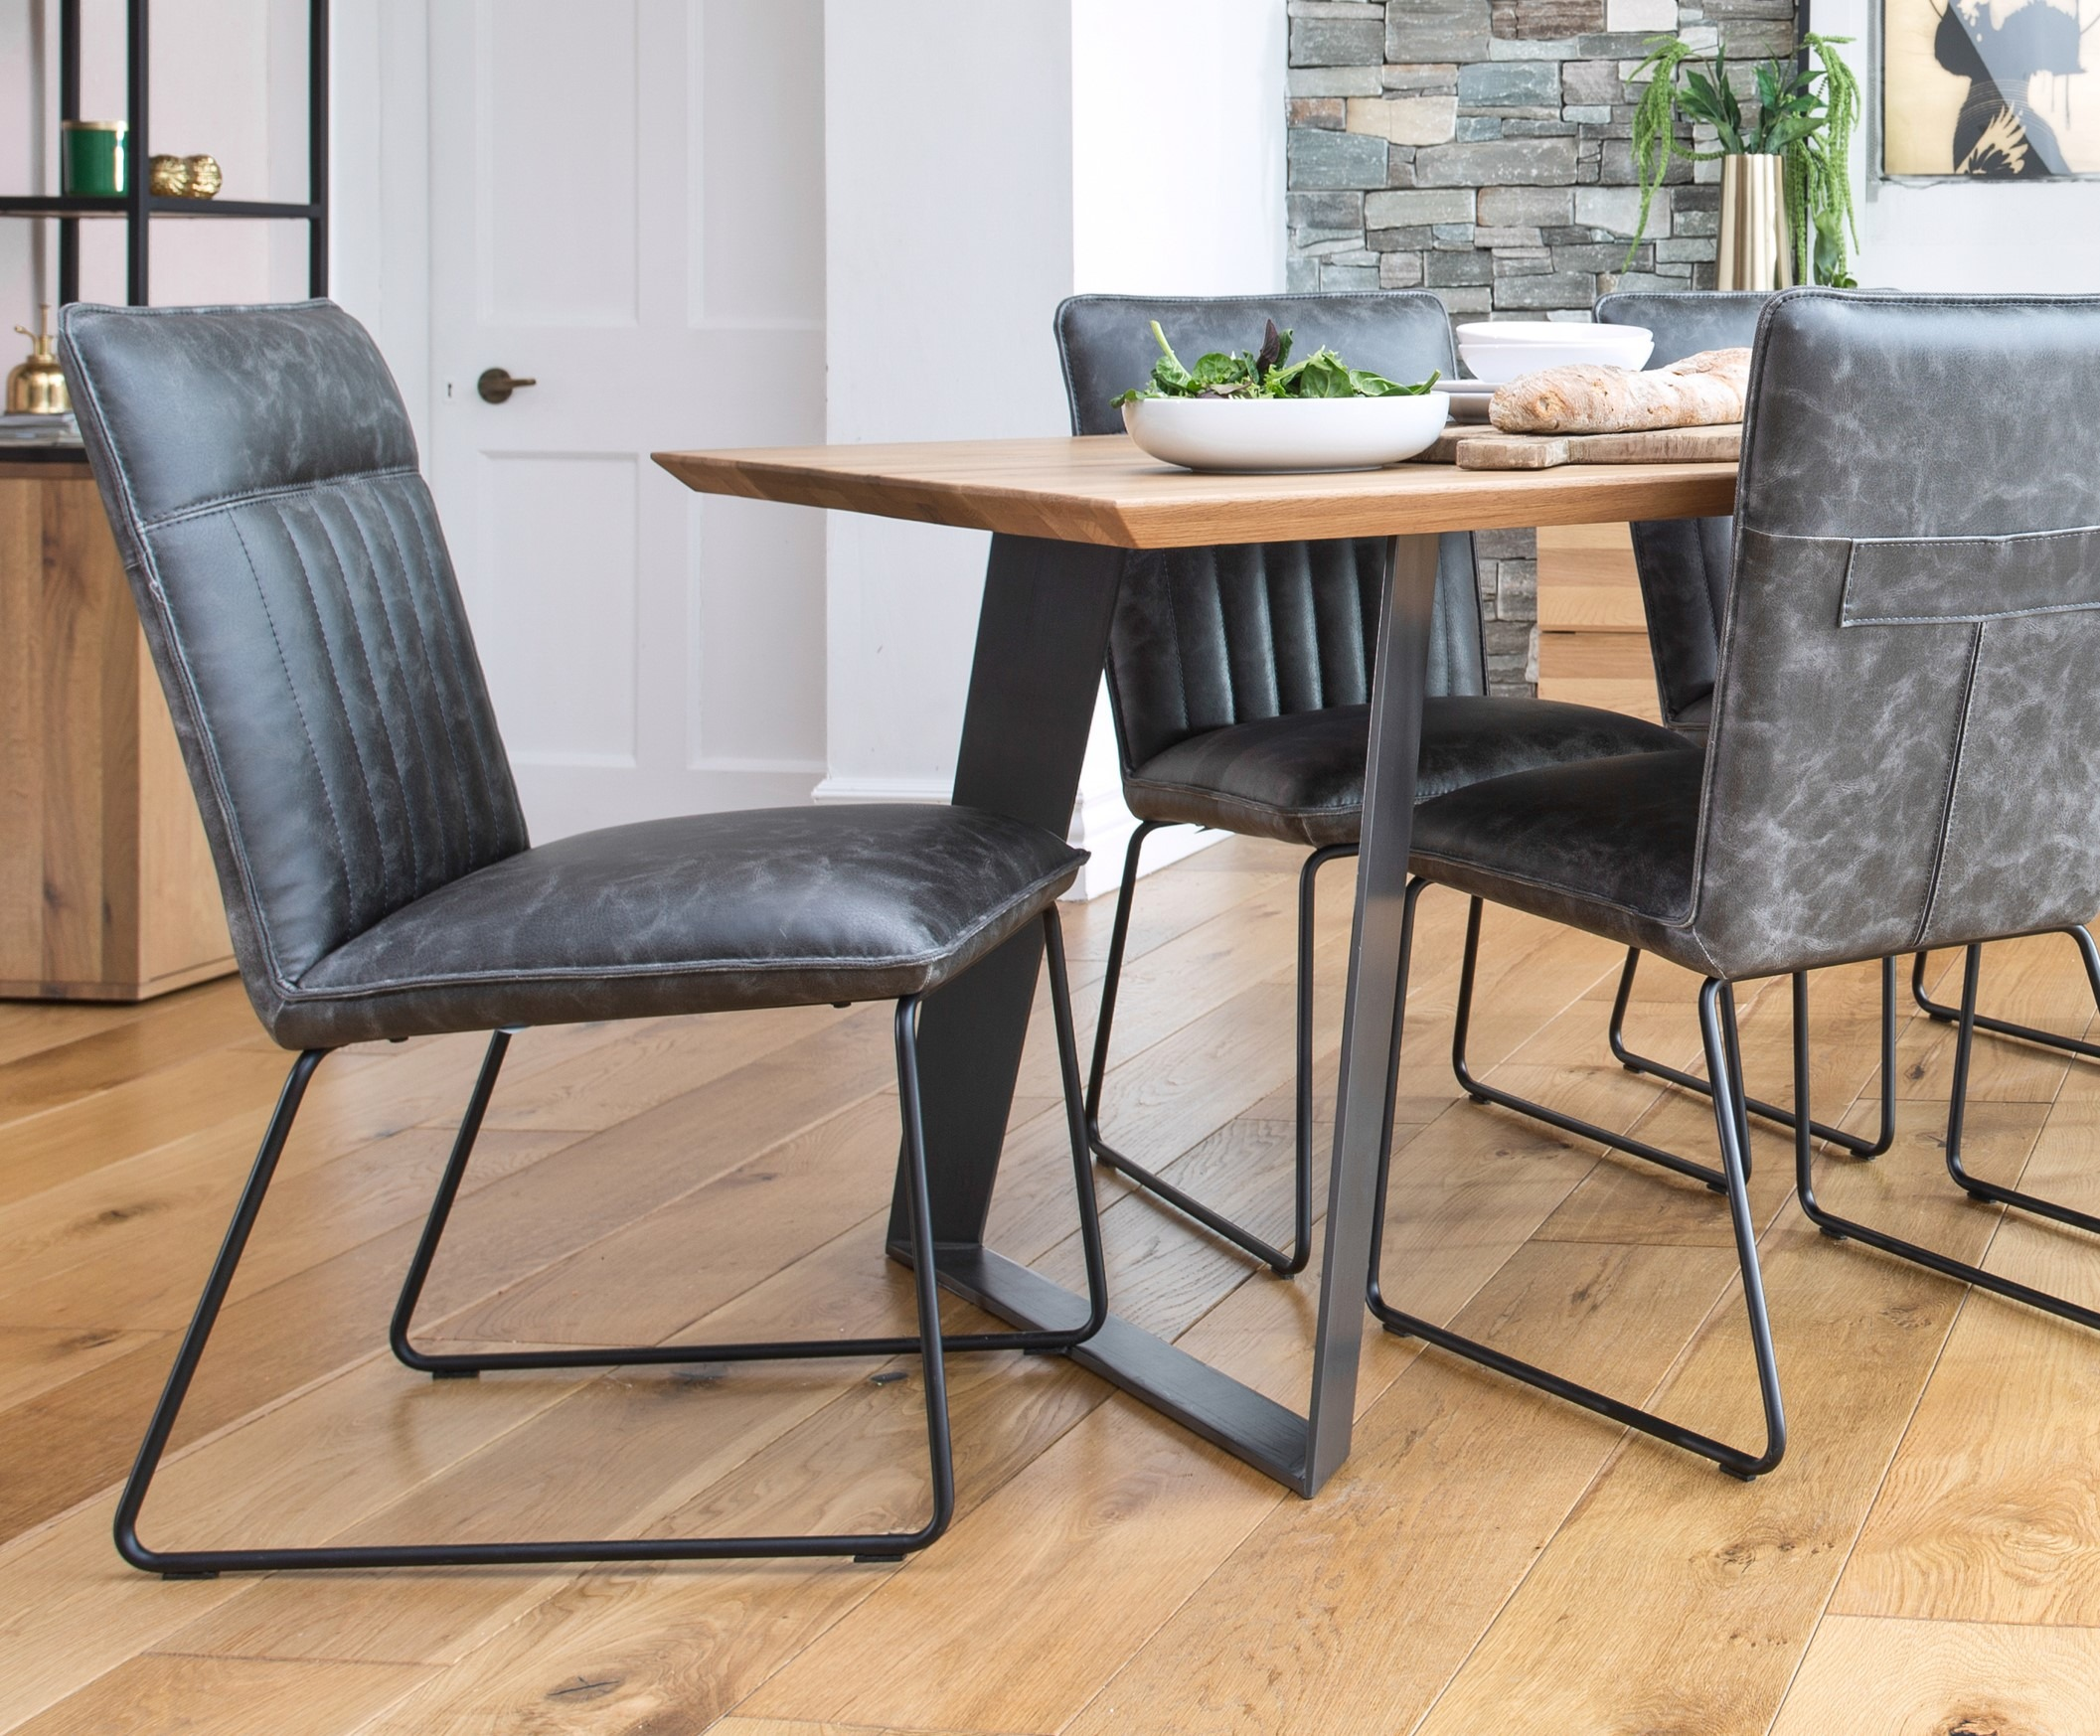 METRO GREY DINING CHAIR– L49cm x D63cm x H92.5cm